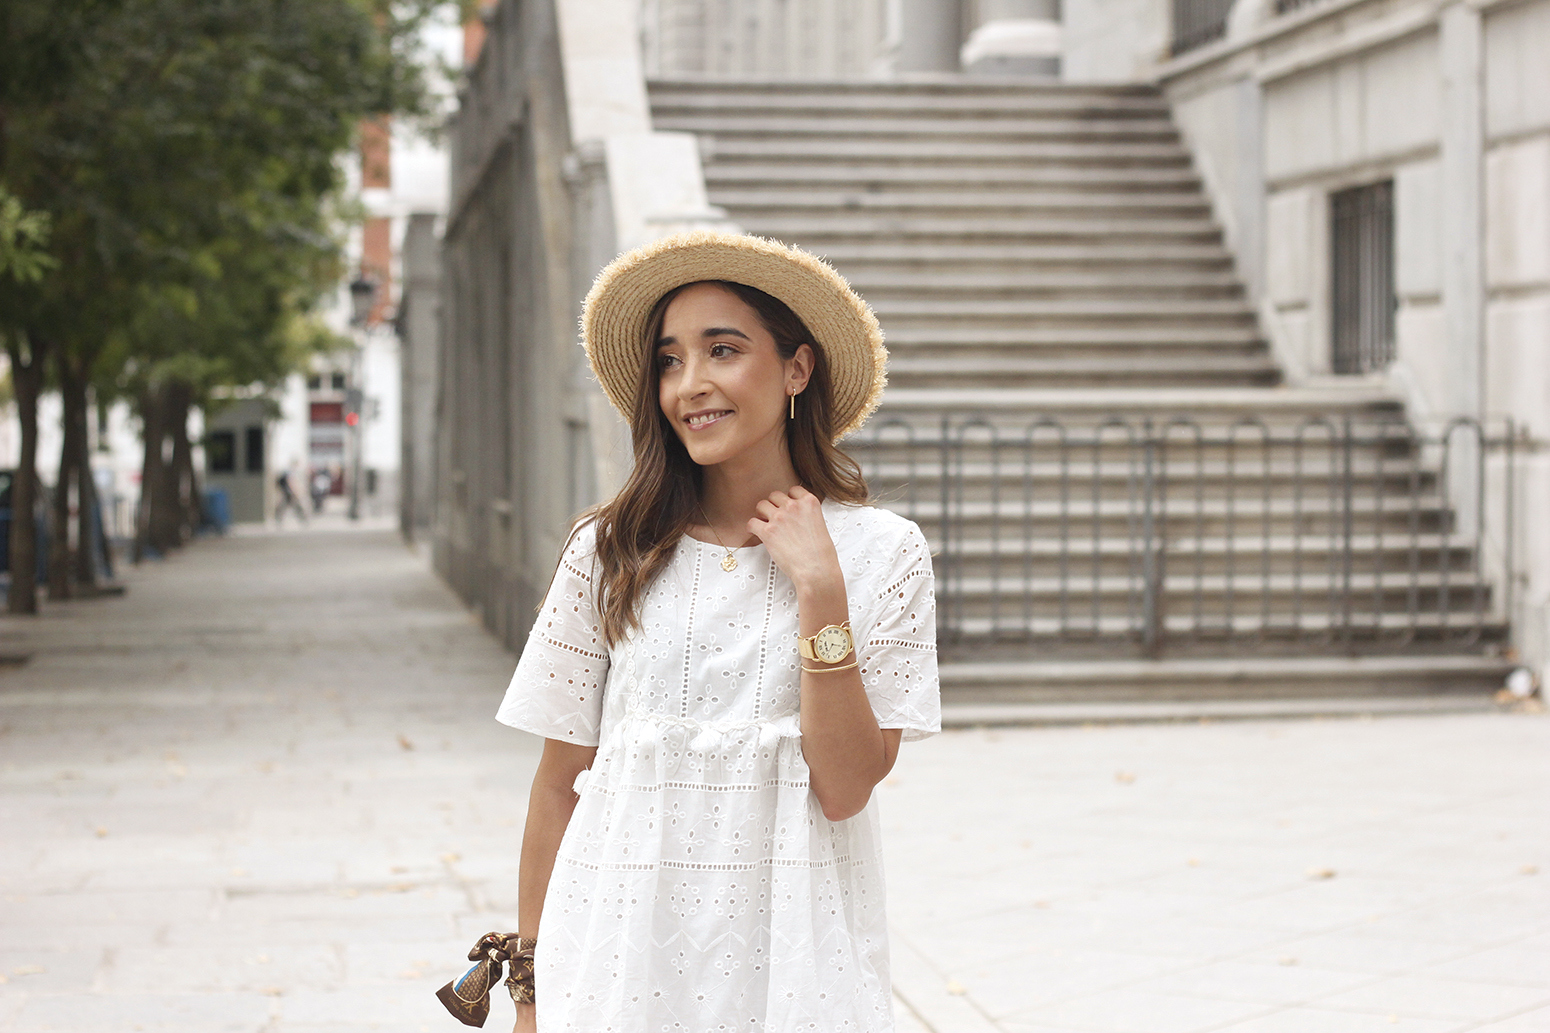 White summer dress canotier street style outfit 201914